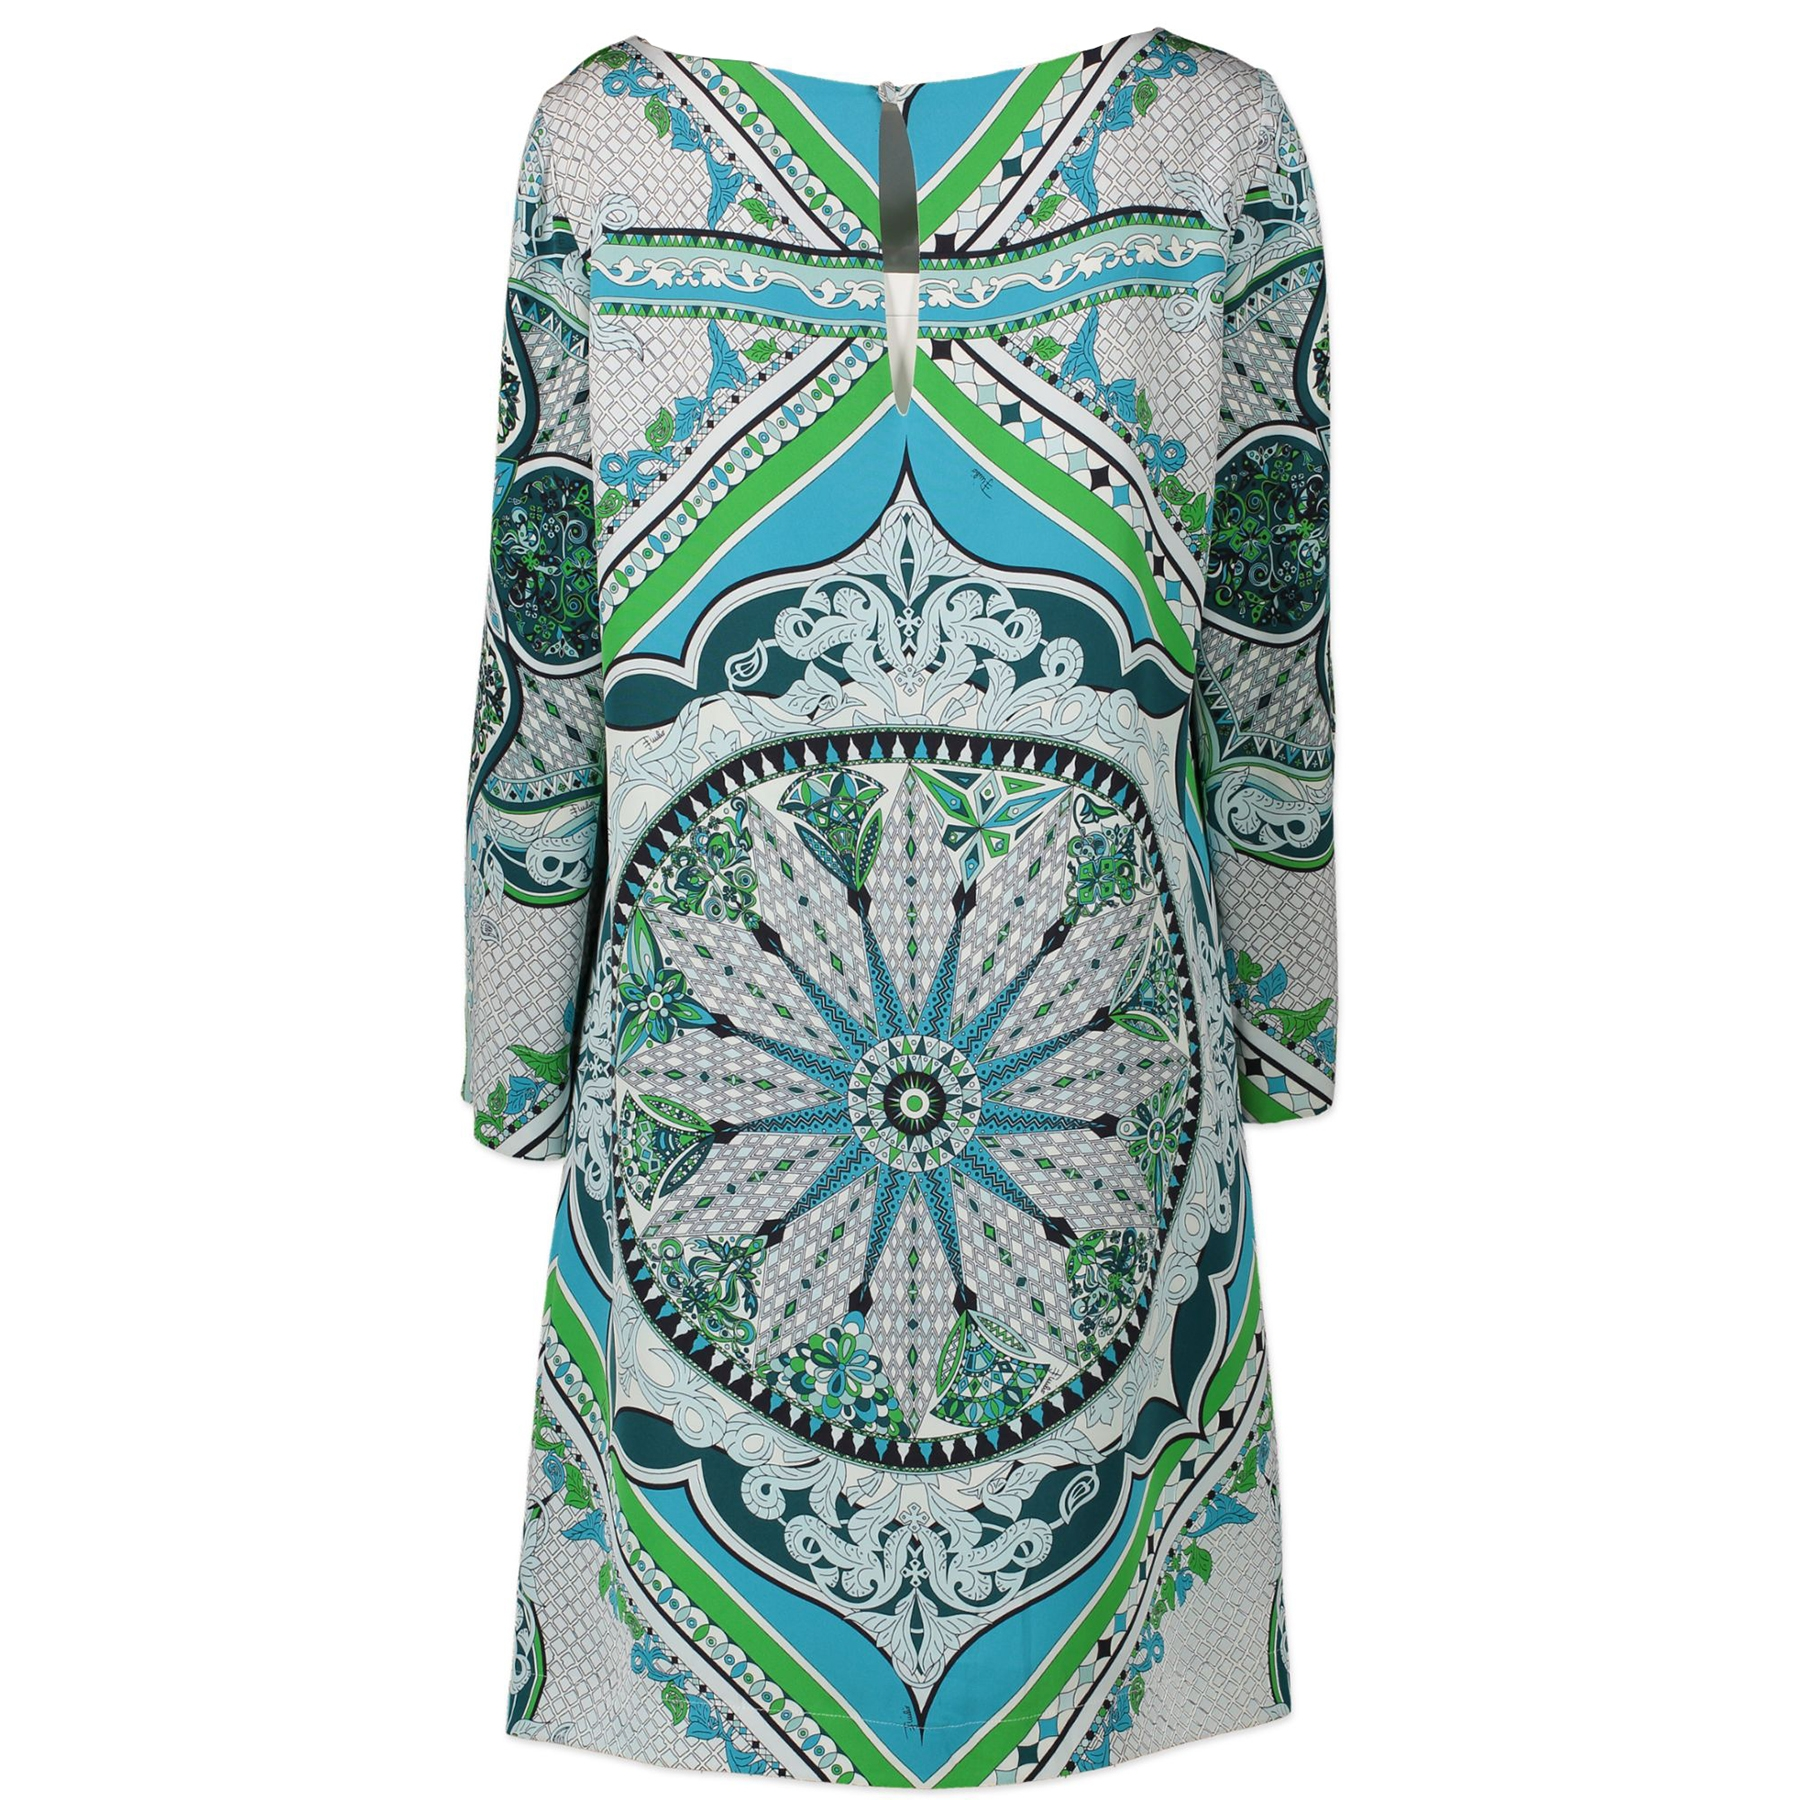 Authentic second-hand vintage Pucci Printed Shift Dress - Size 44 buy online webshop LabelLOV